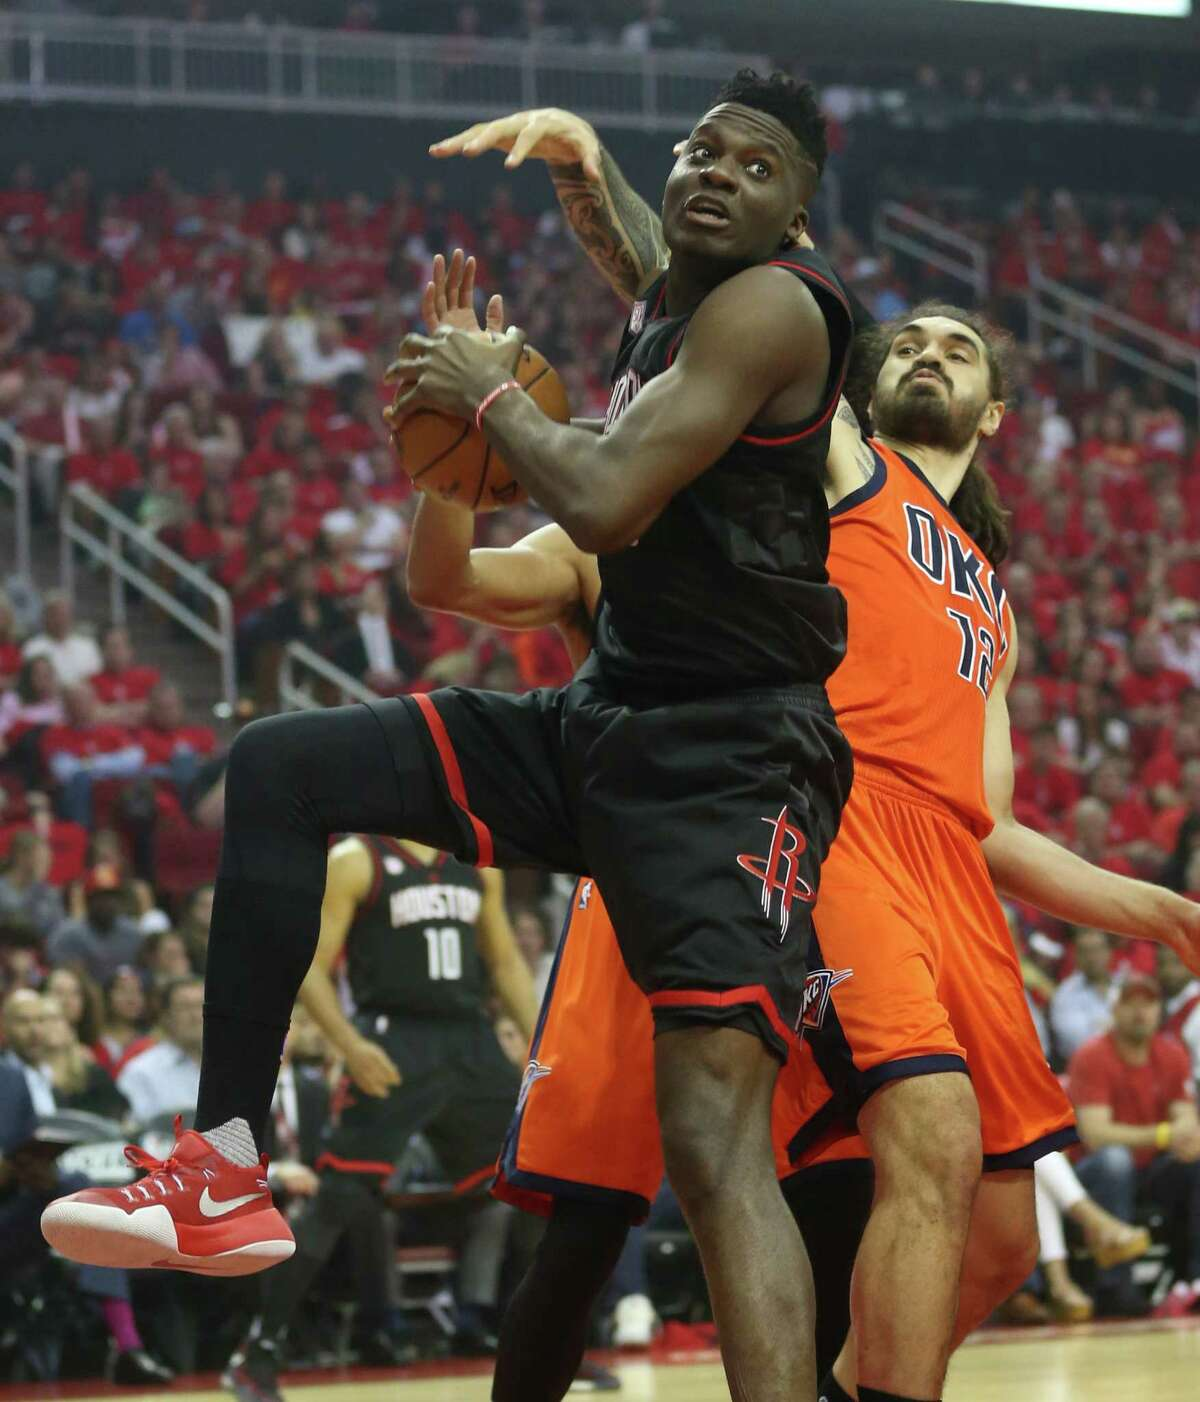 Houston Rockets center Clint Capela (15) gras a rebound against Oklahoma City Thunder center Steven Adams (12) during the first half of Game 1 of an NBA basketball first-round, Western Conference playoffs at the Toyota Center, Sunday April 16, 2017, in Houston. ( Karen Warren / Houston Chronicle )